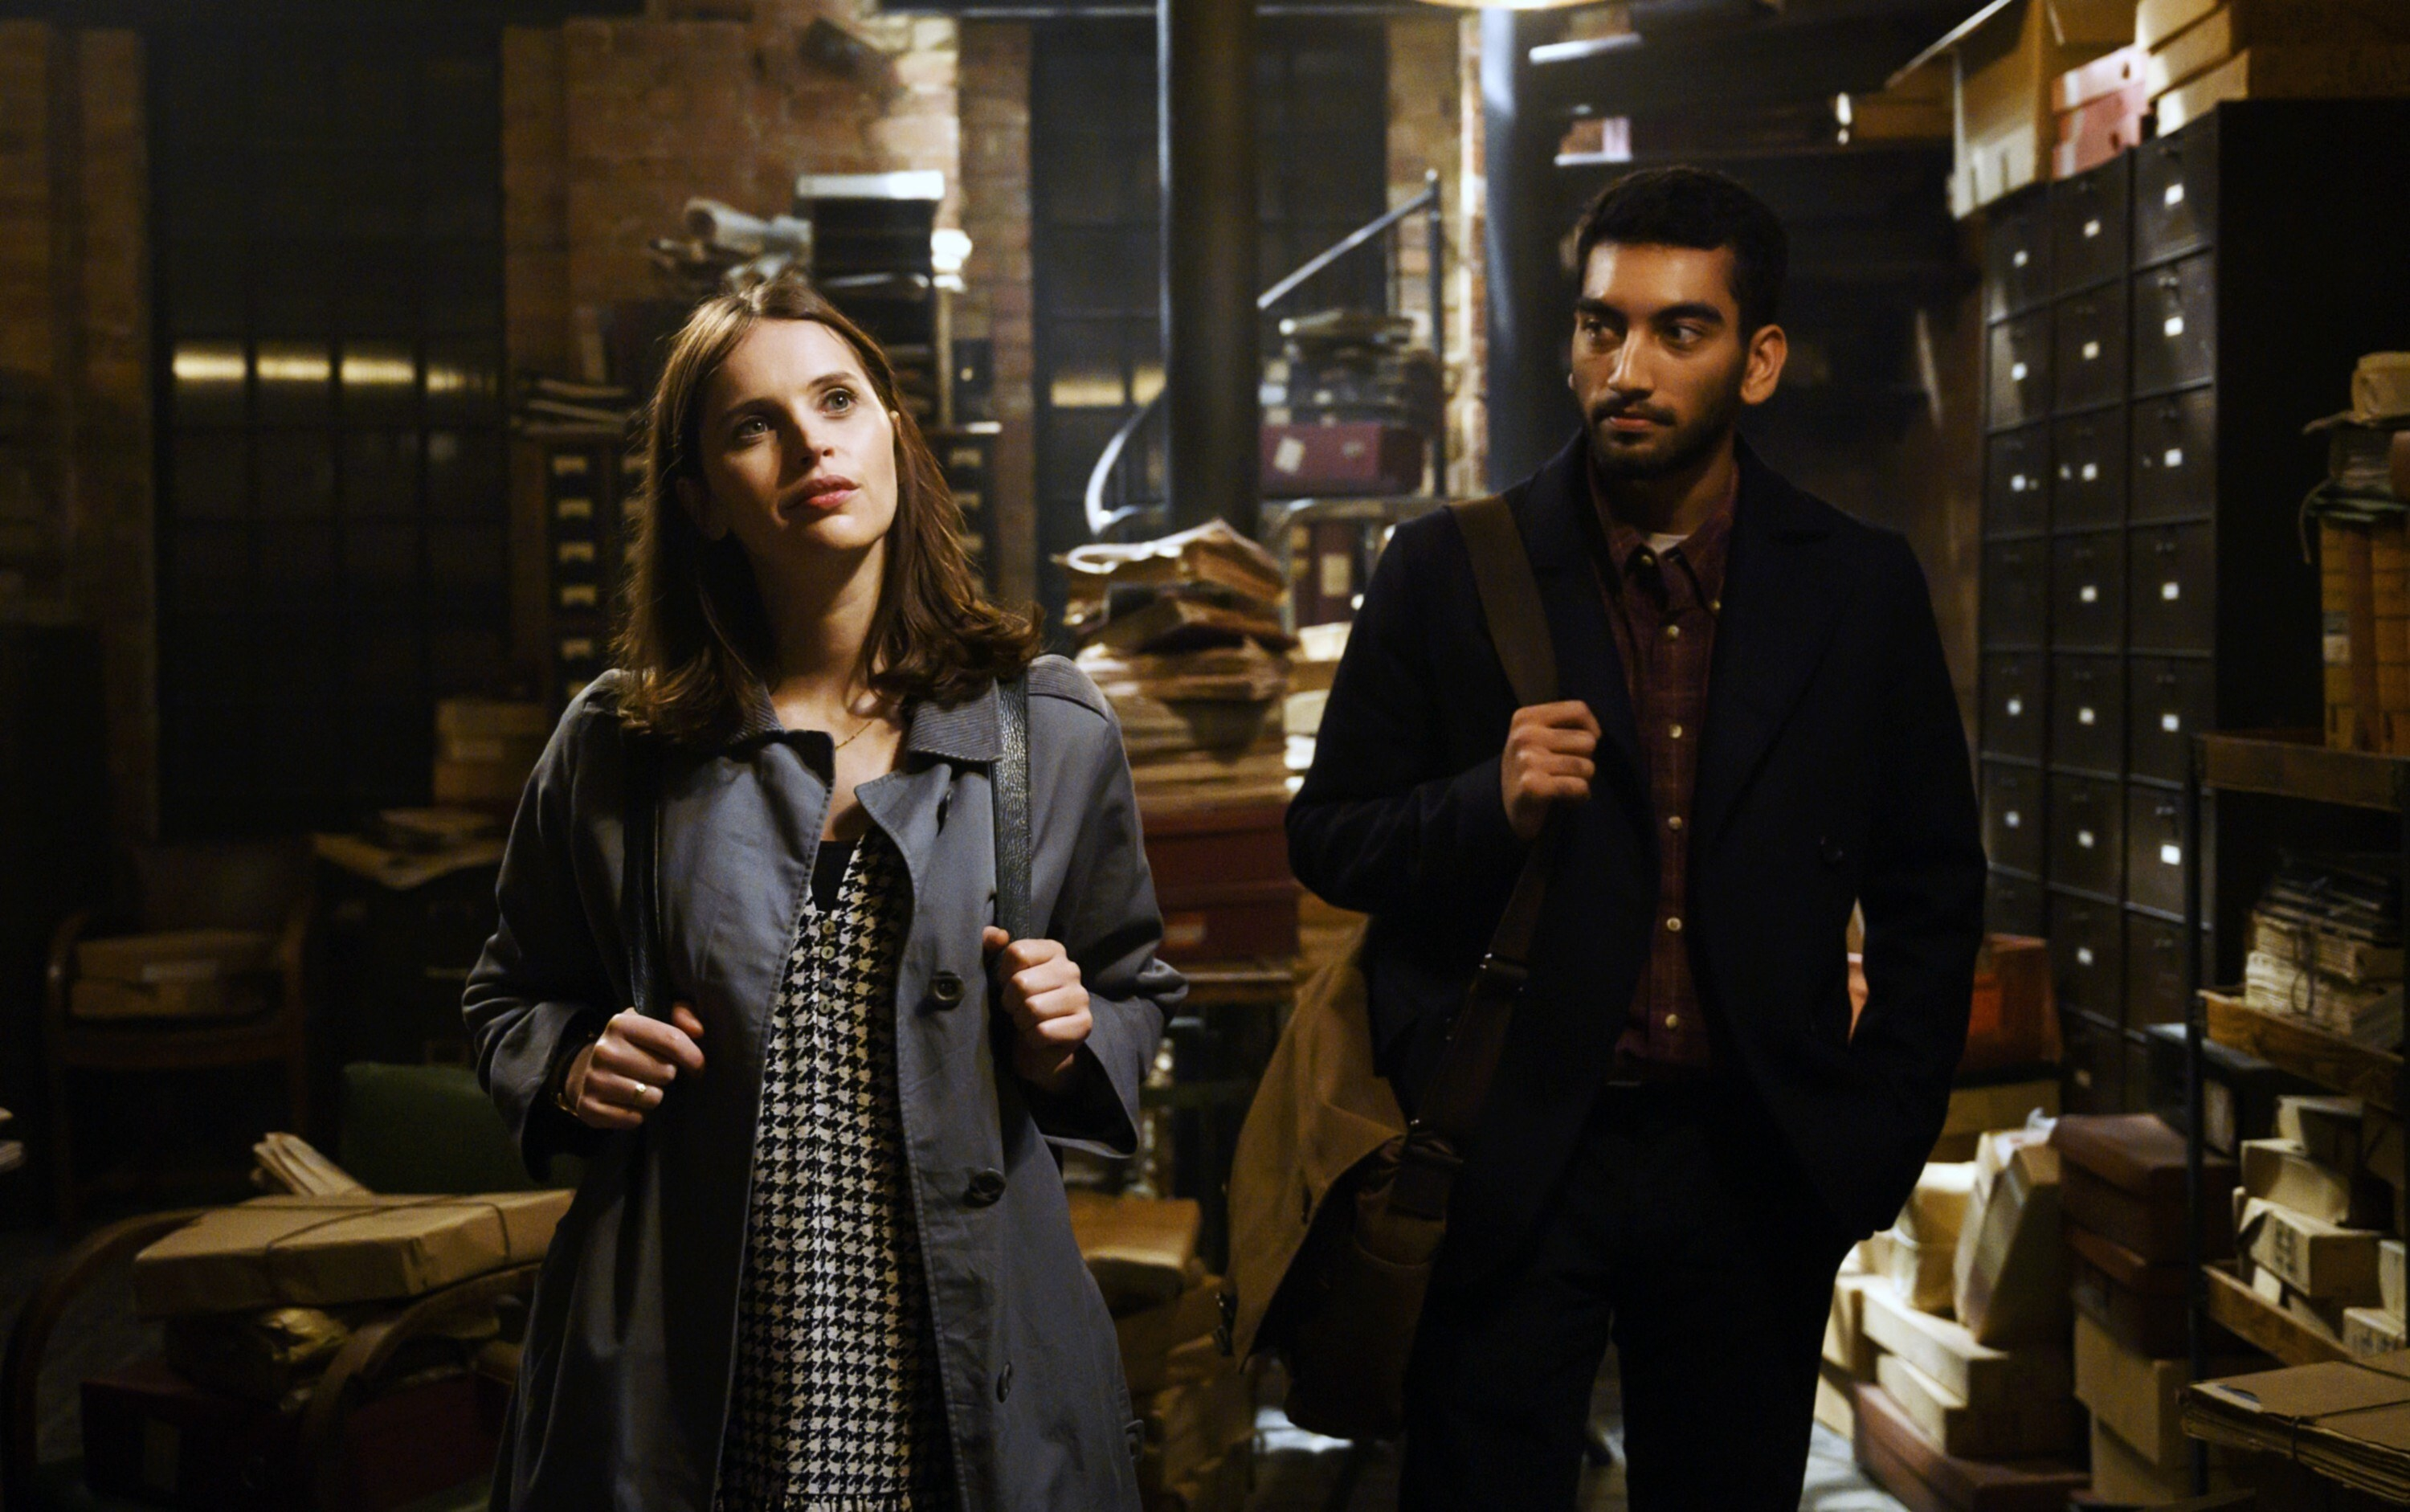 Ellie in dress and dark trench coat looking up at something, Rory stands behind her to the side looking at her, they are both in a cluttered archive room